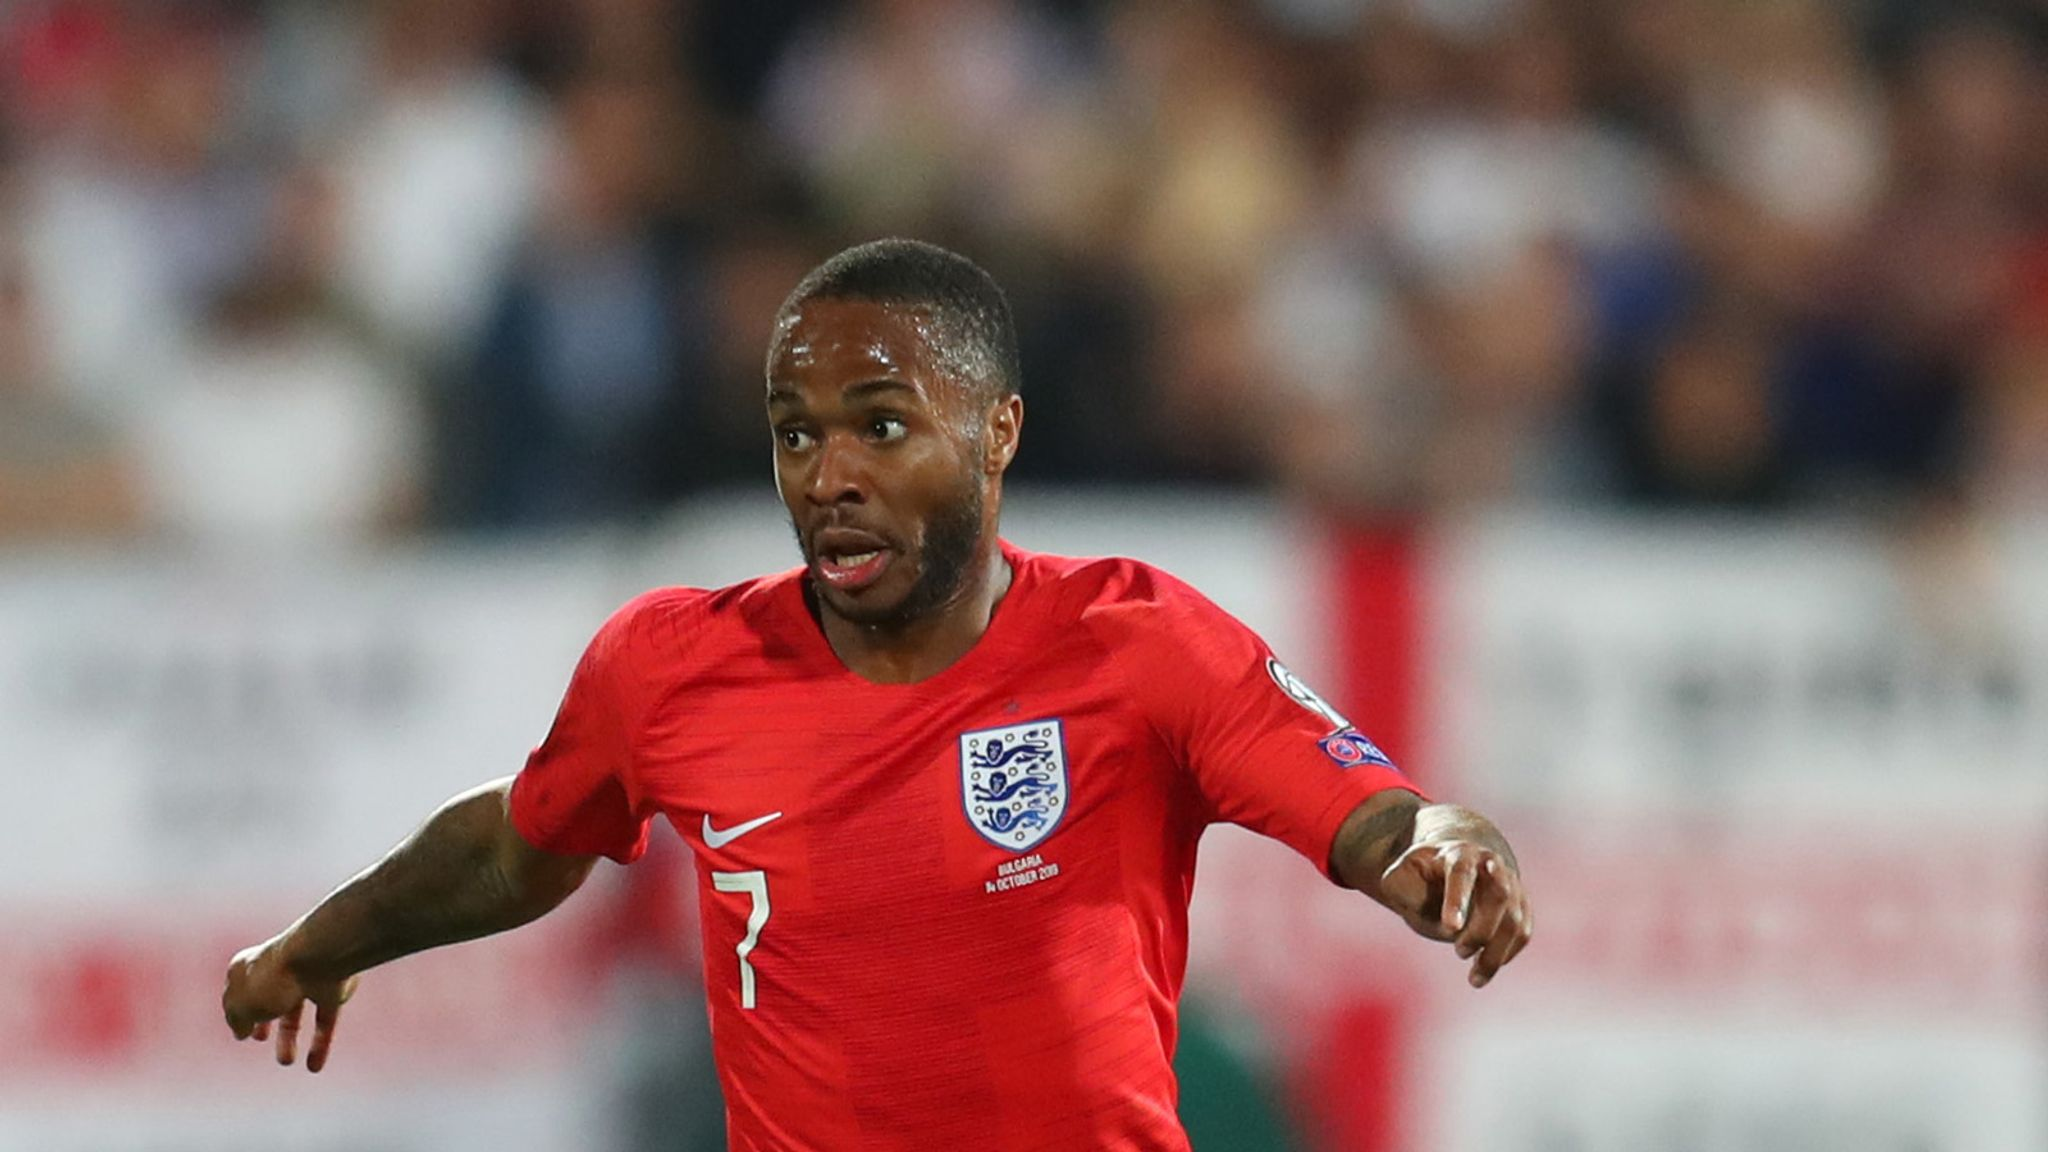 Bulgaria vs England racism in European Qualifier: Managers have their say